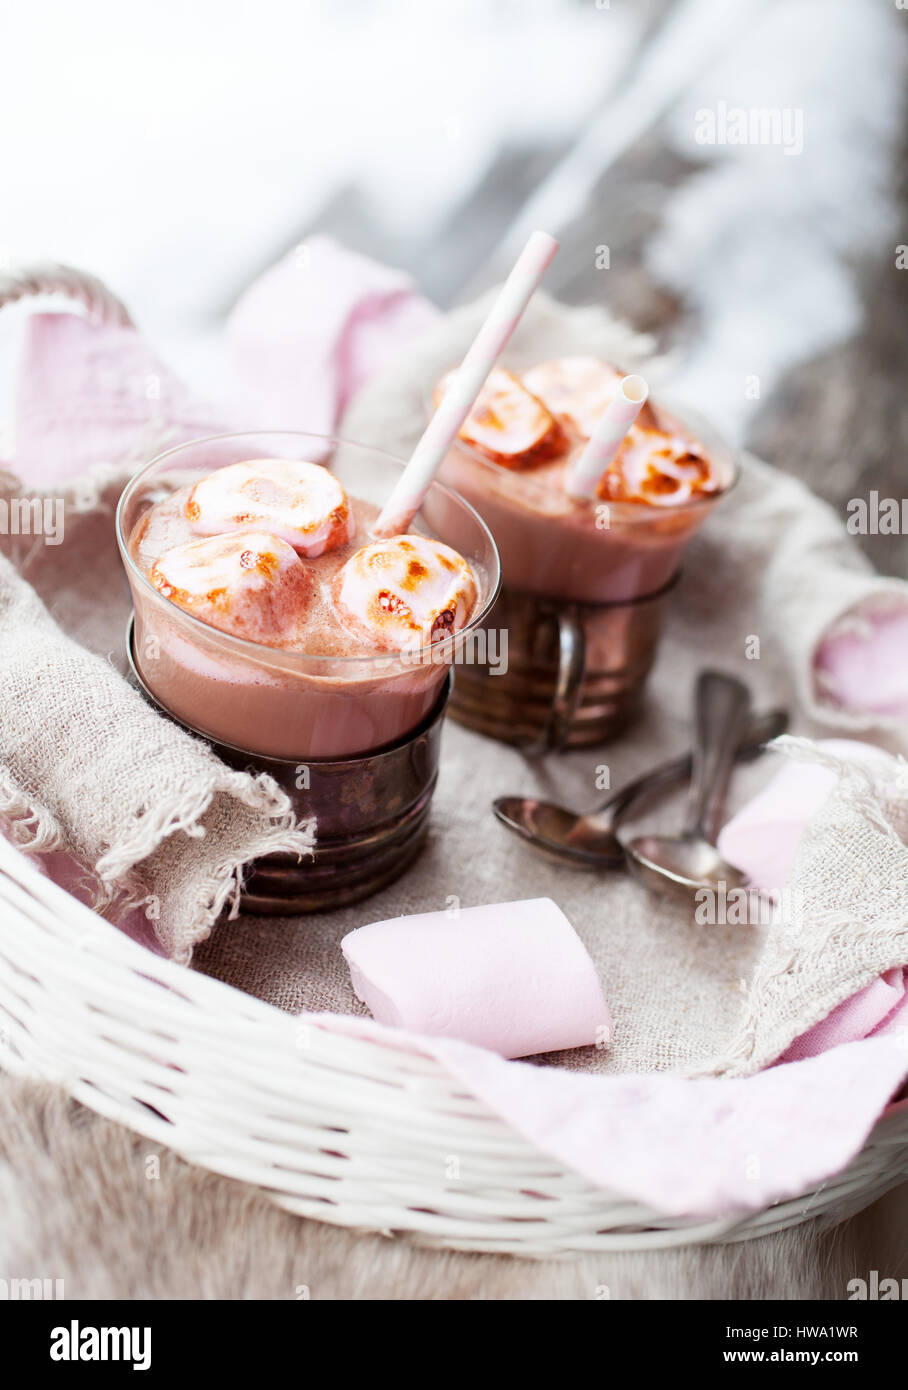 Hot Chocolate with pink roasted marshmallows - Stock Image